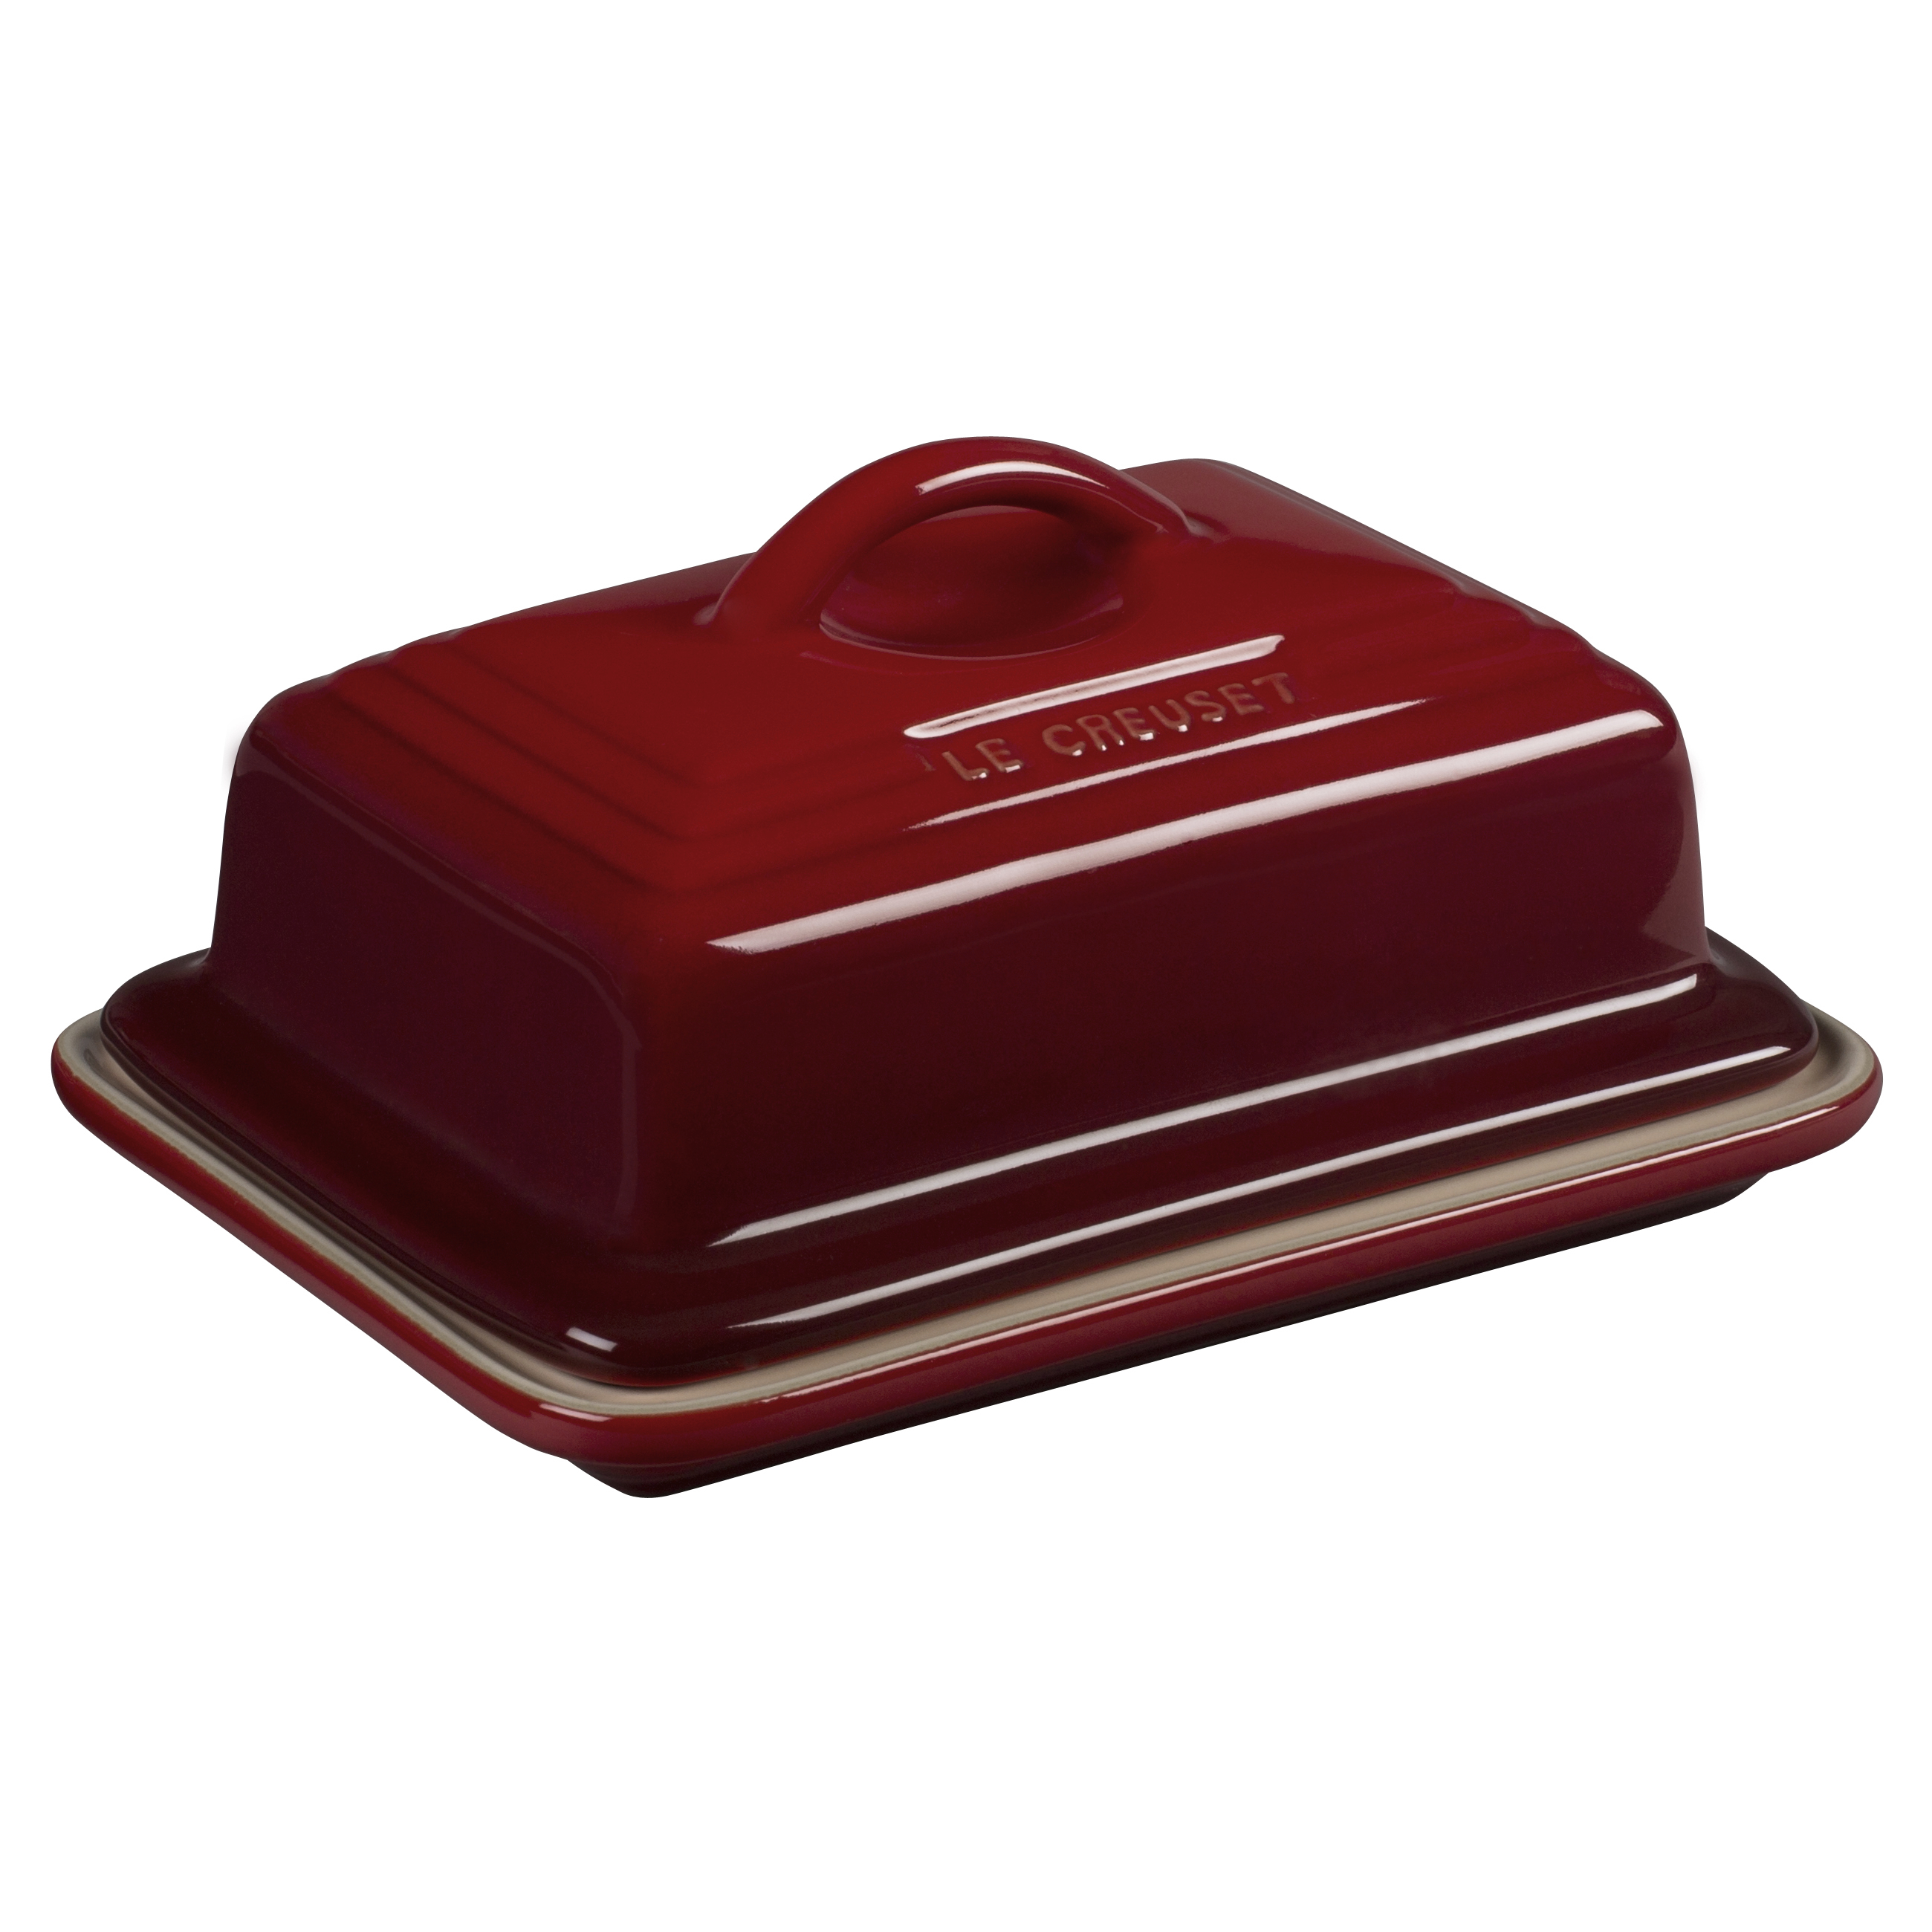 Le Creuset Heritage Cherry Stoneware Butter Dish